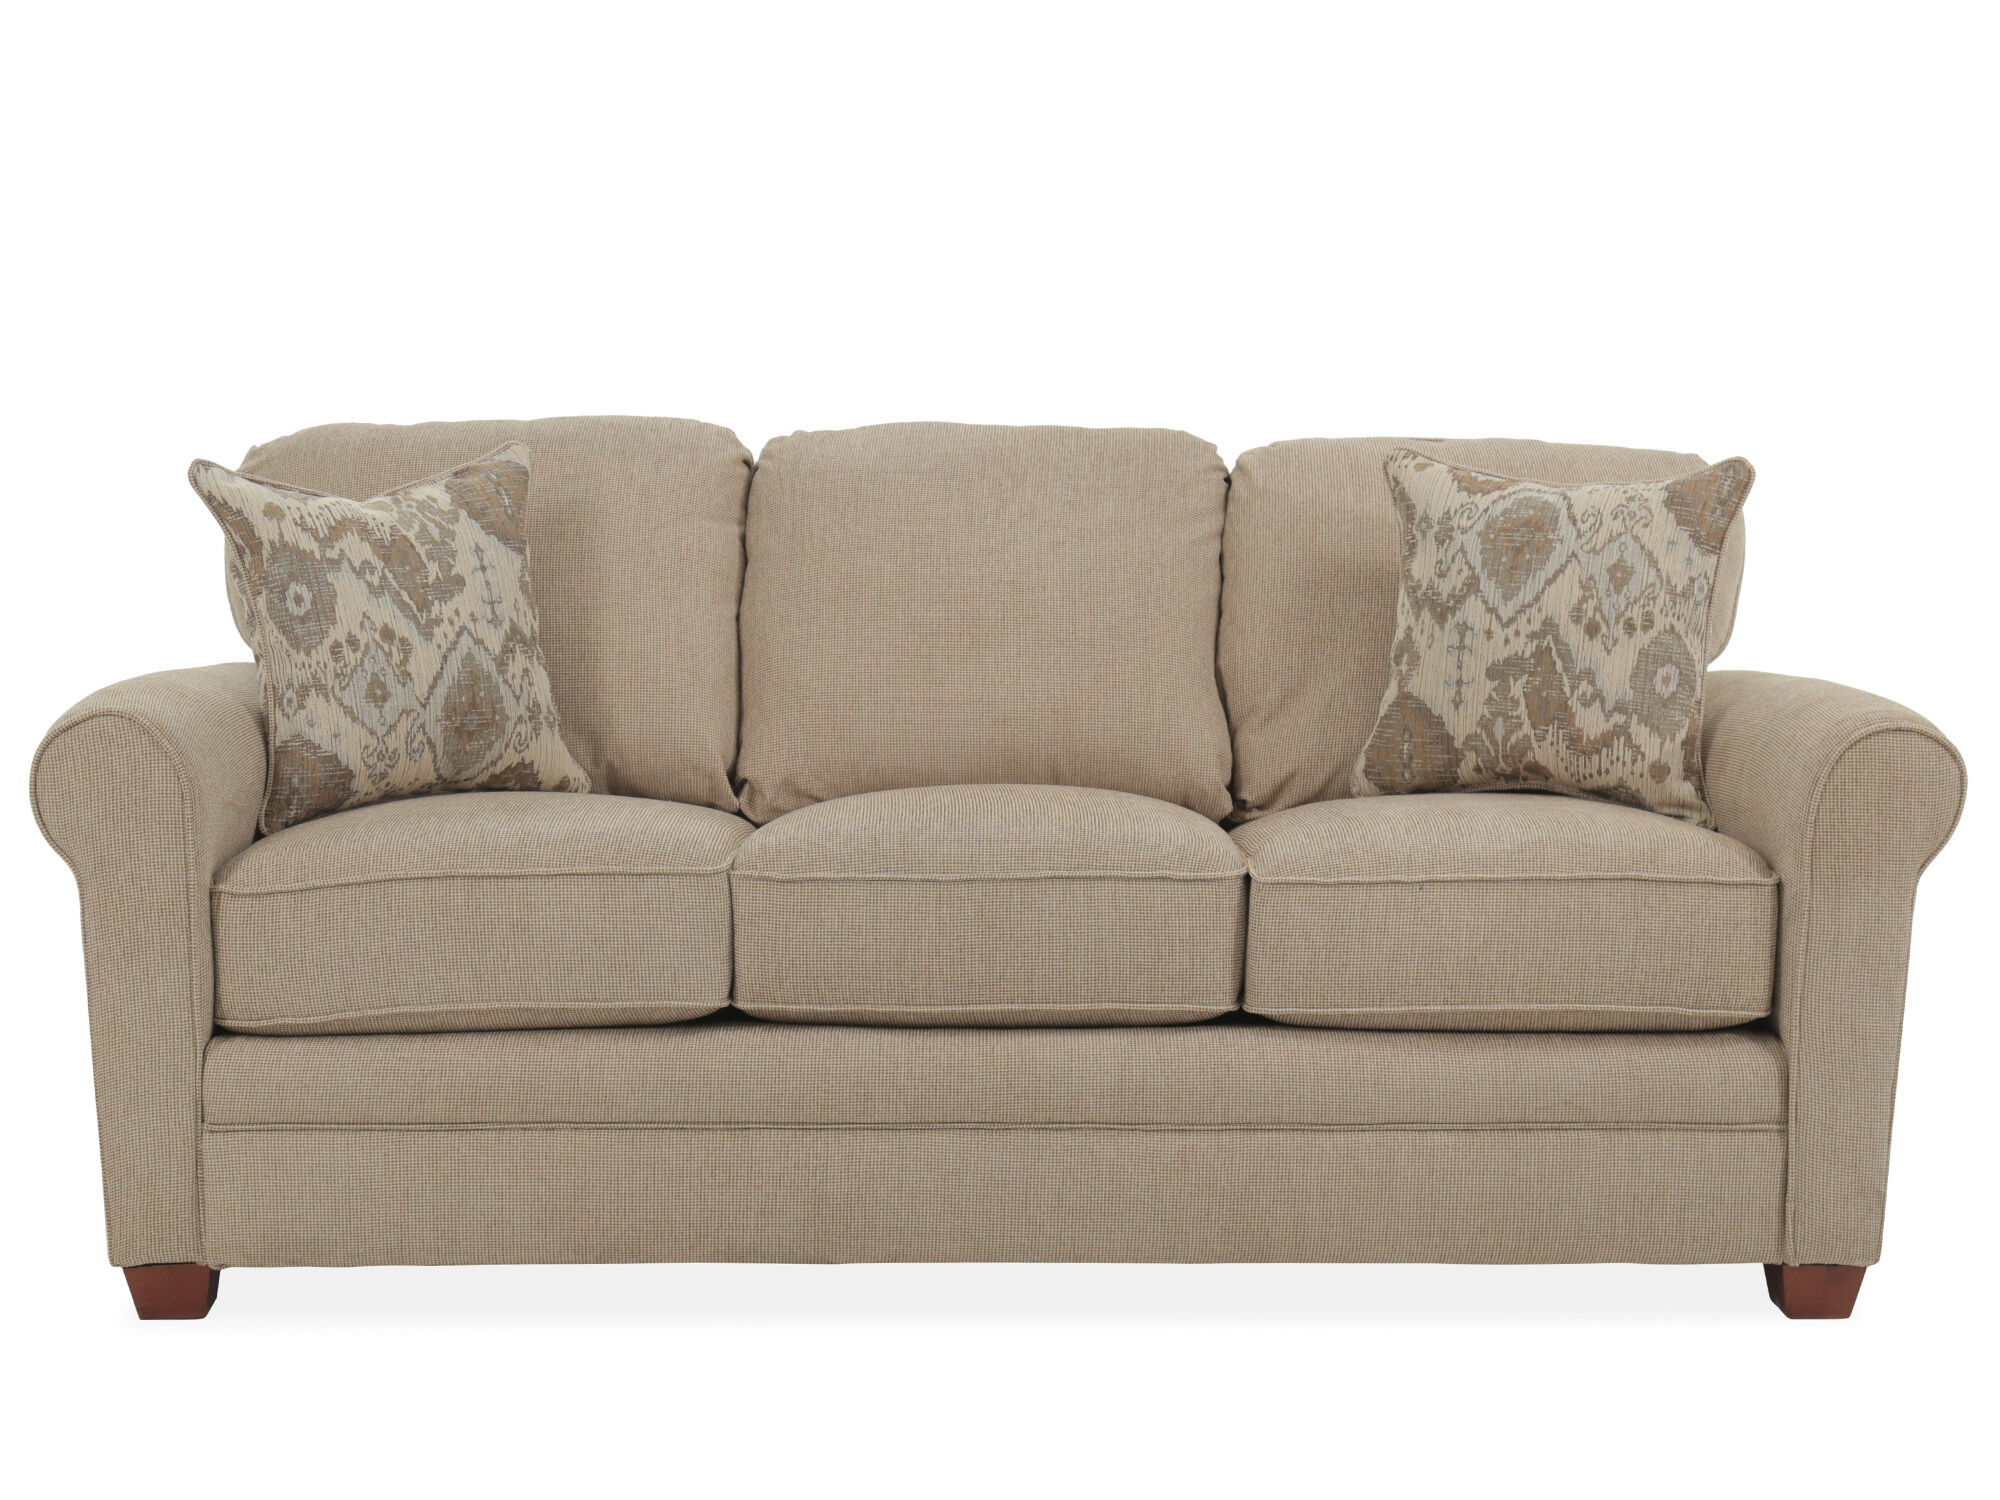 lane sleeper sofa queen best sectional for back support roll arm transitional 84 quot in sand